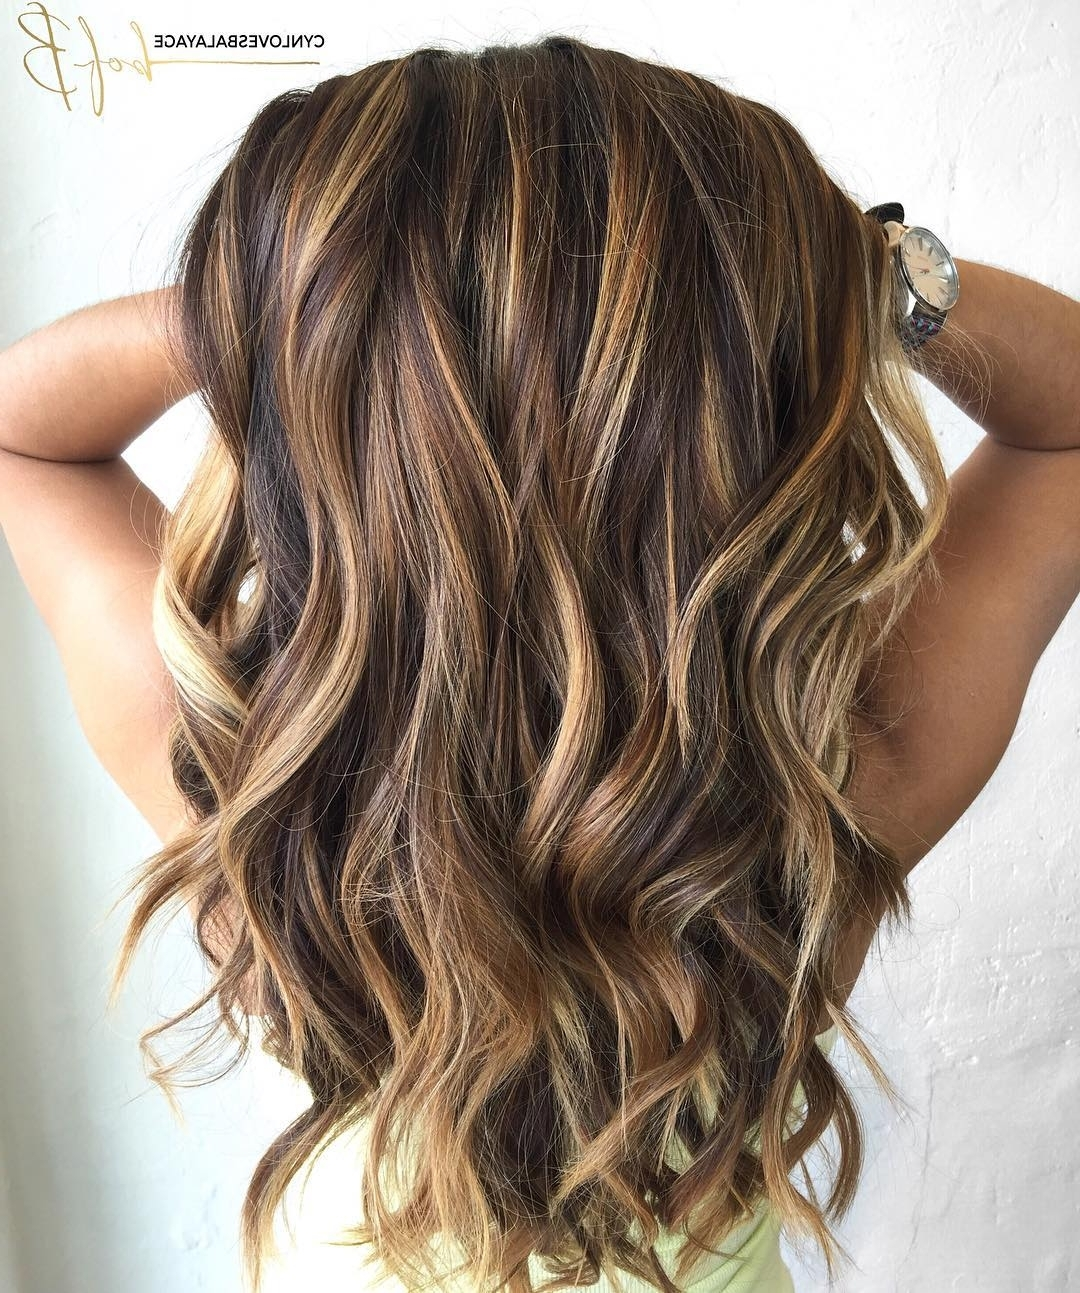 60 Looks With Caramel Highlights On Brown And Dark Brown Hair Intended For Most Recent Brown Blonde Layers Hairstyles (View 7 of 20)